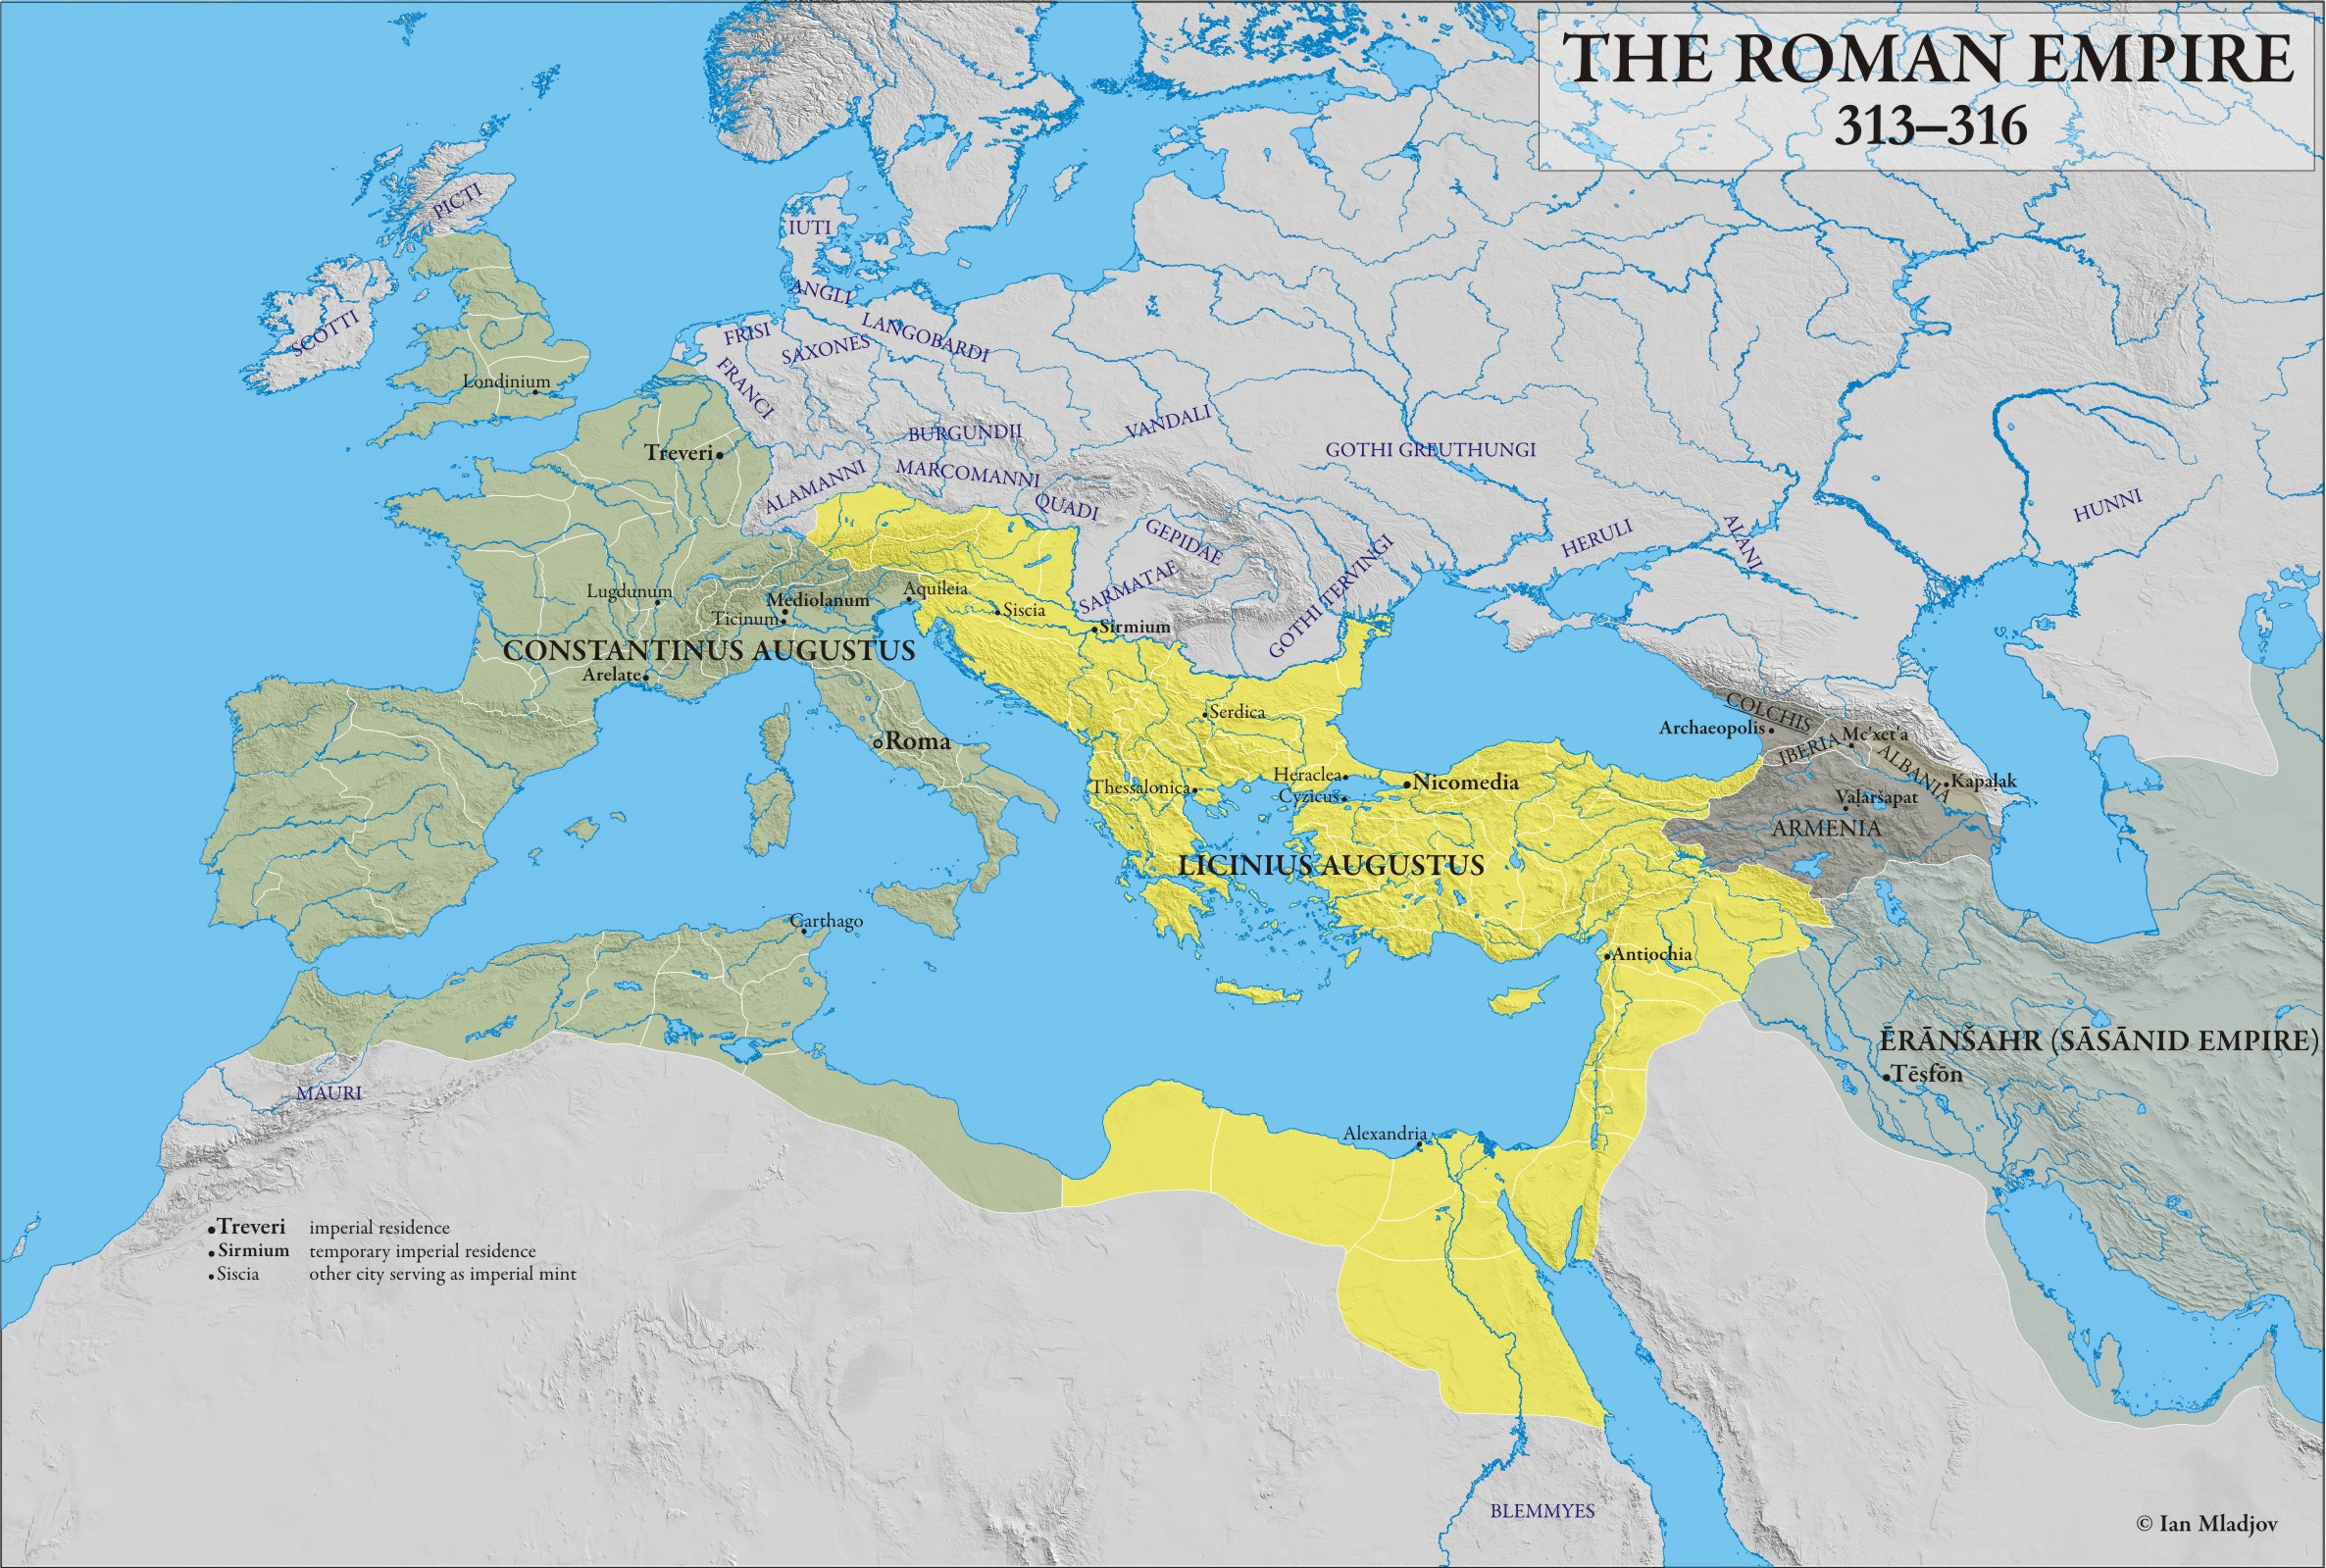 a history of constantinople in the roman empire The history of the decline and fall of the roman empire vol012 constantinople the history of the decline and fall txt or read online from scribd flag for.